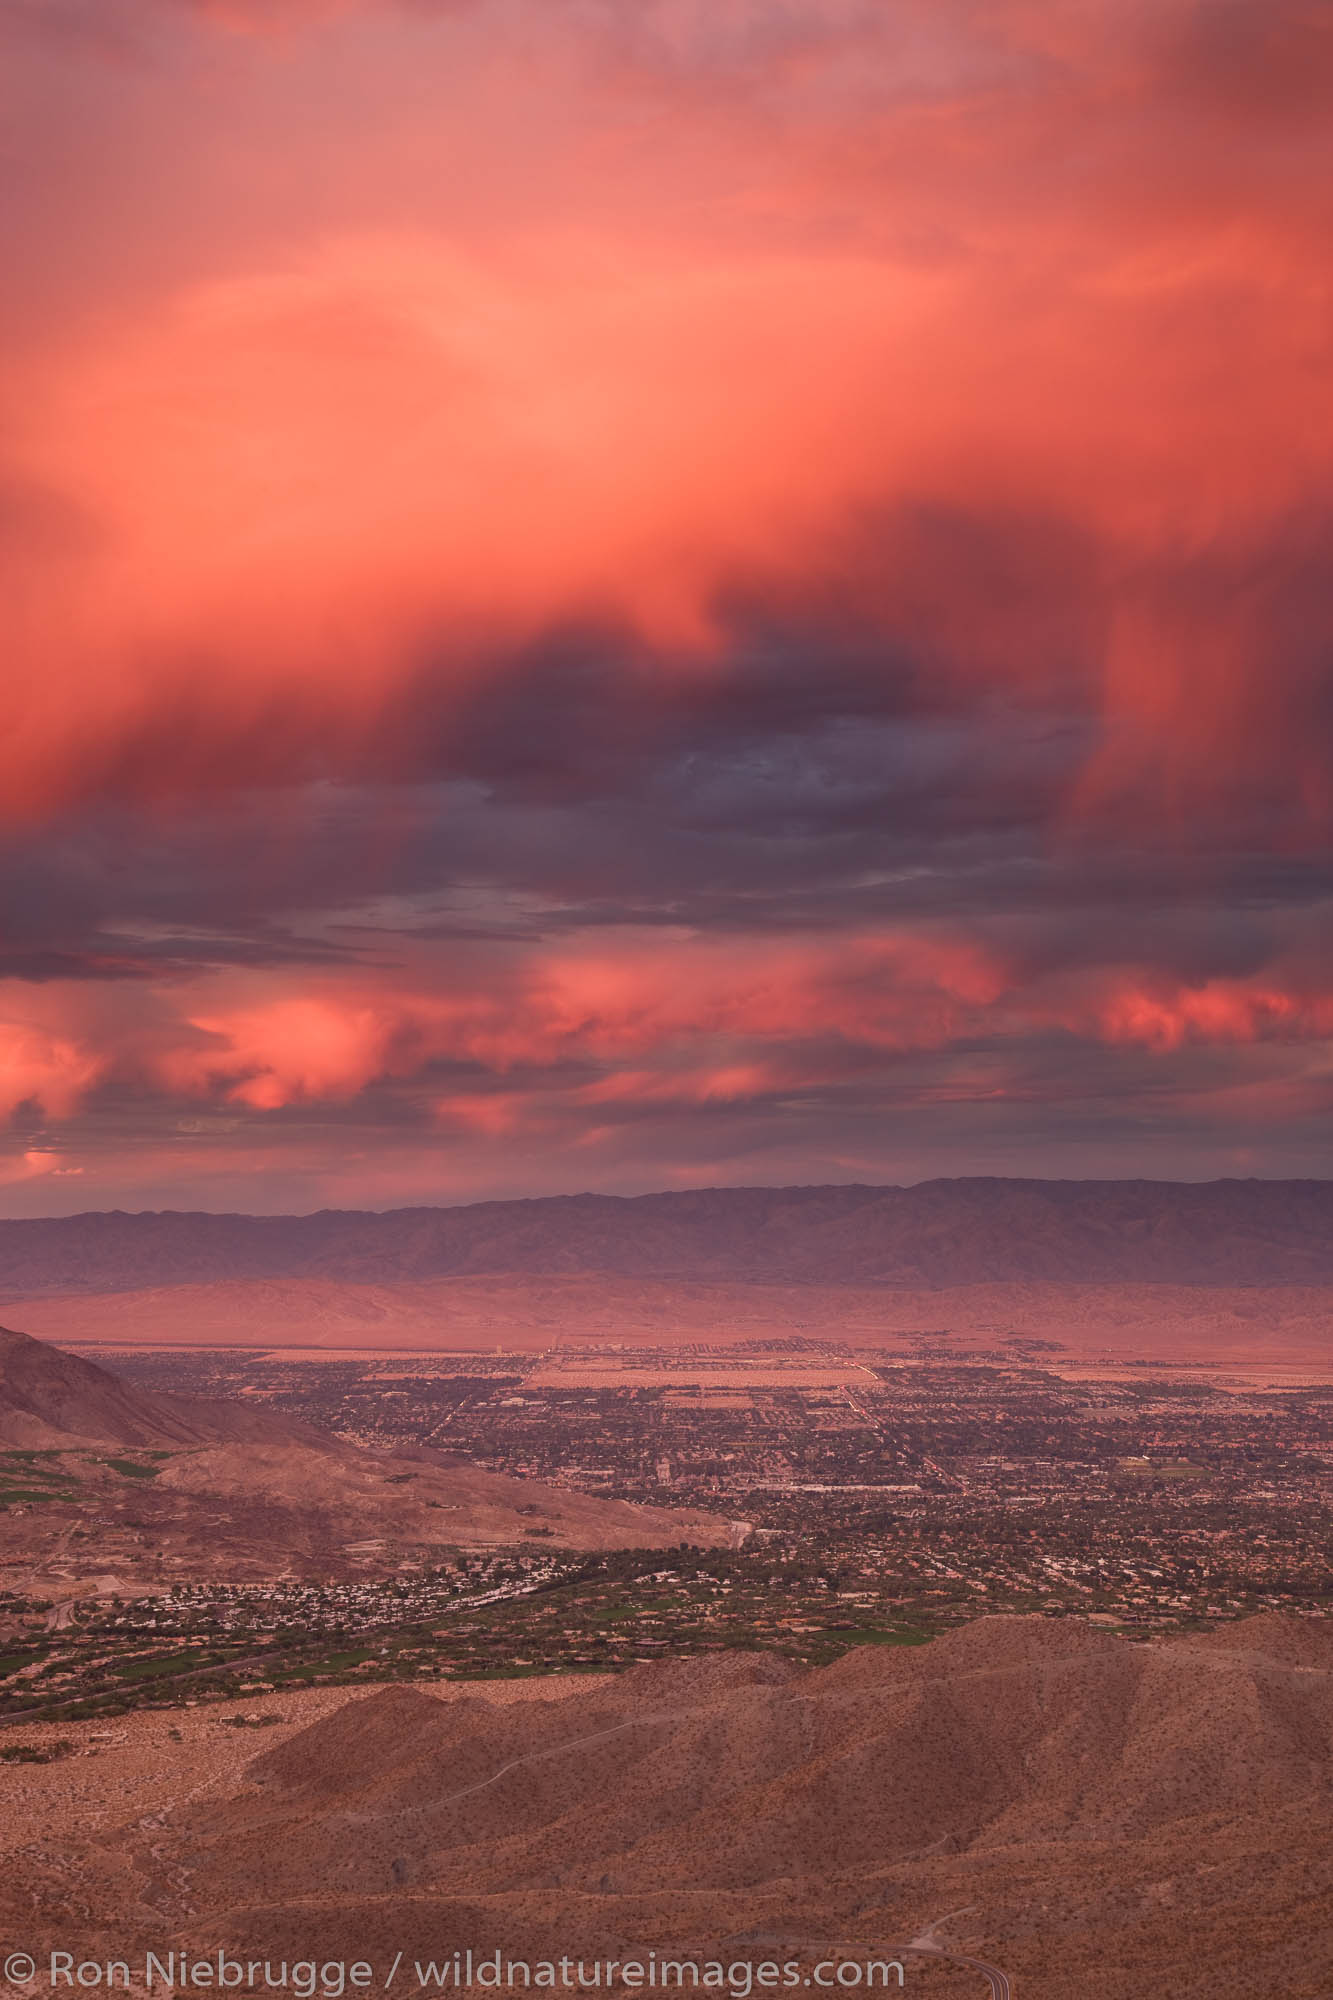 Sunset over Palm Desert and Rancho Mirage in the Coachella Valley, California.